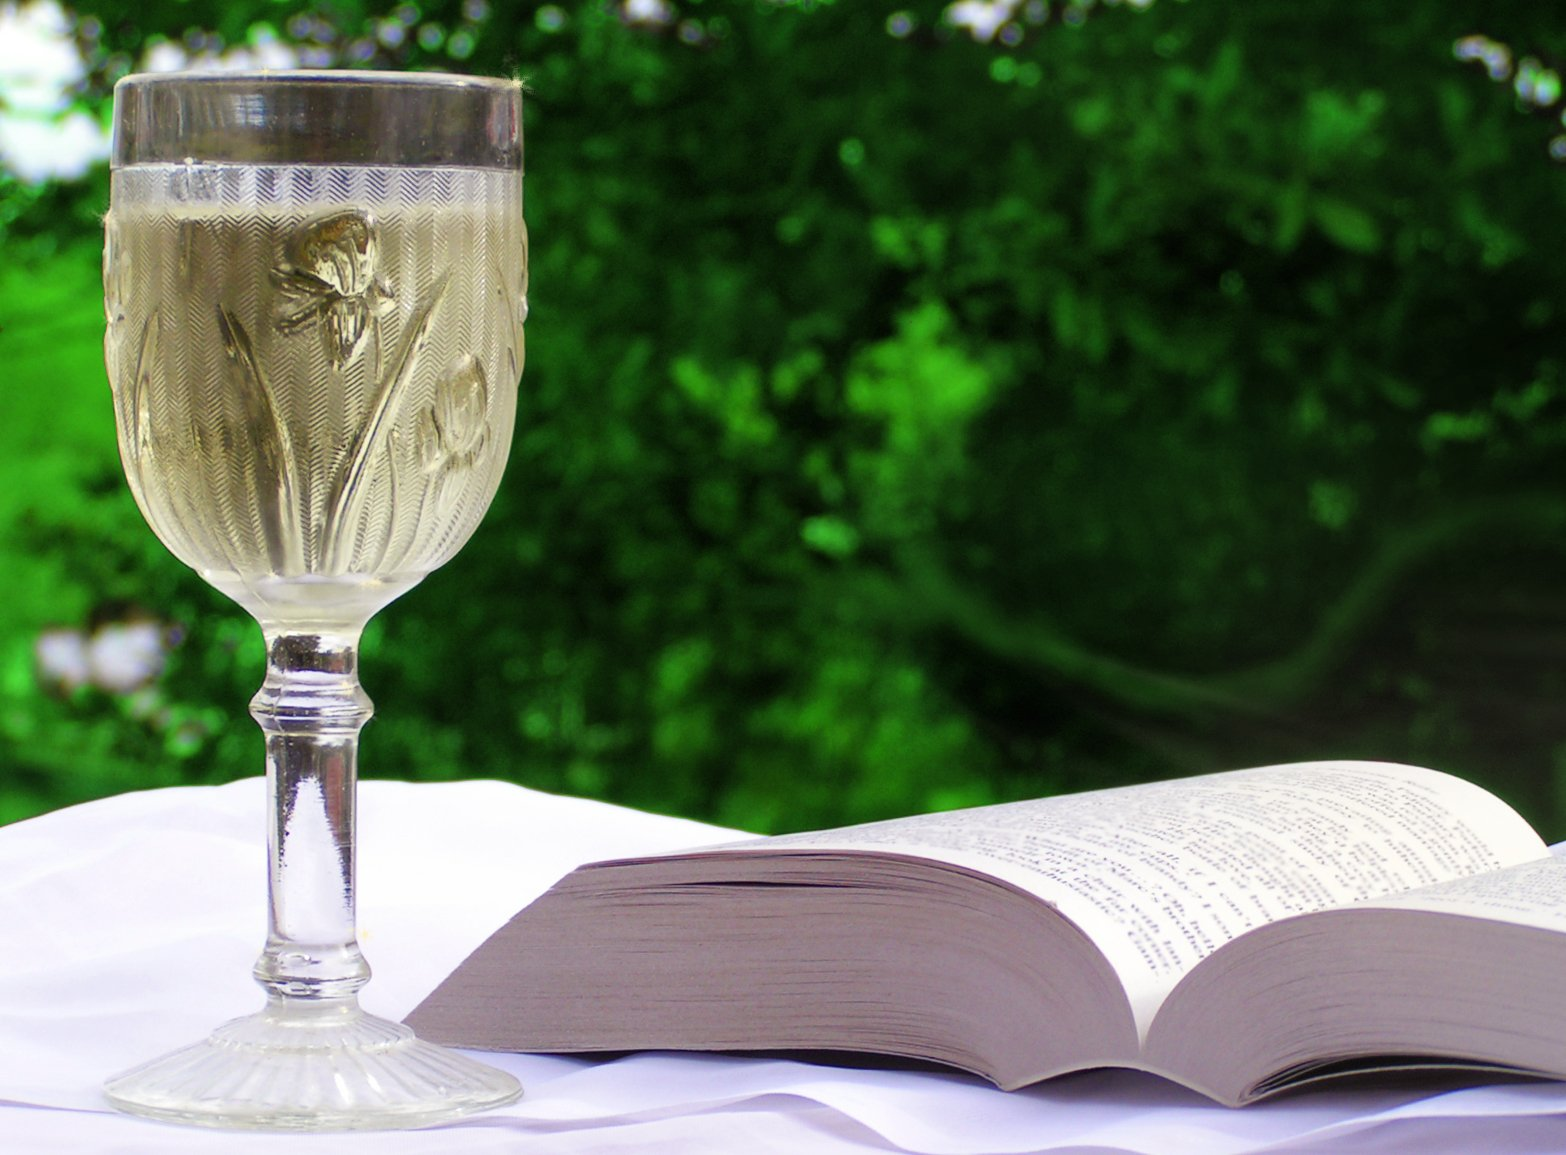 Glass of wine with book